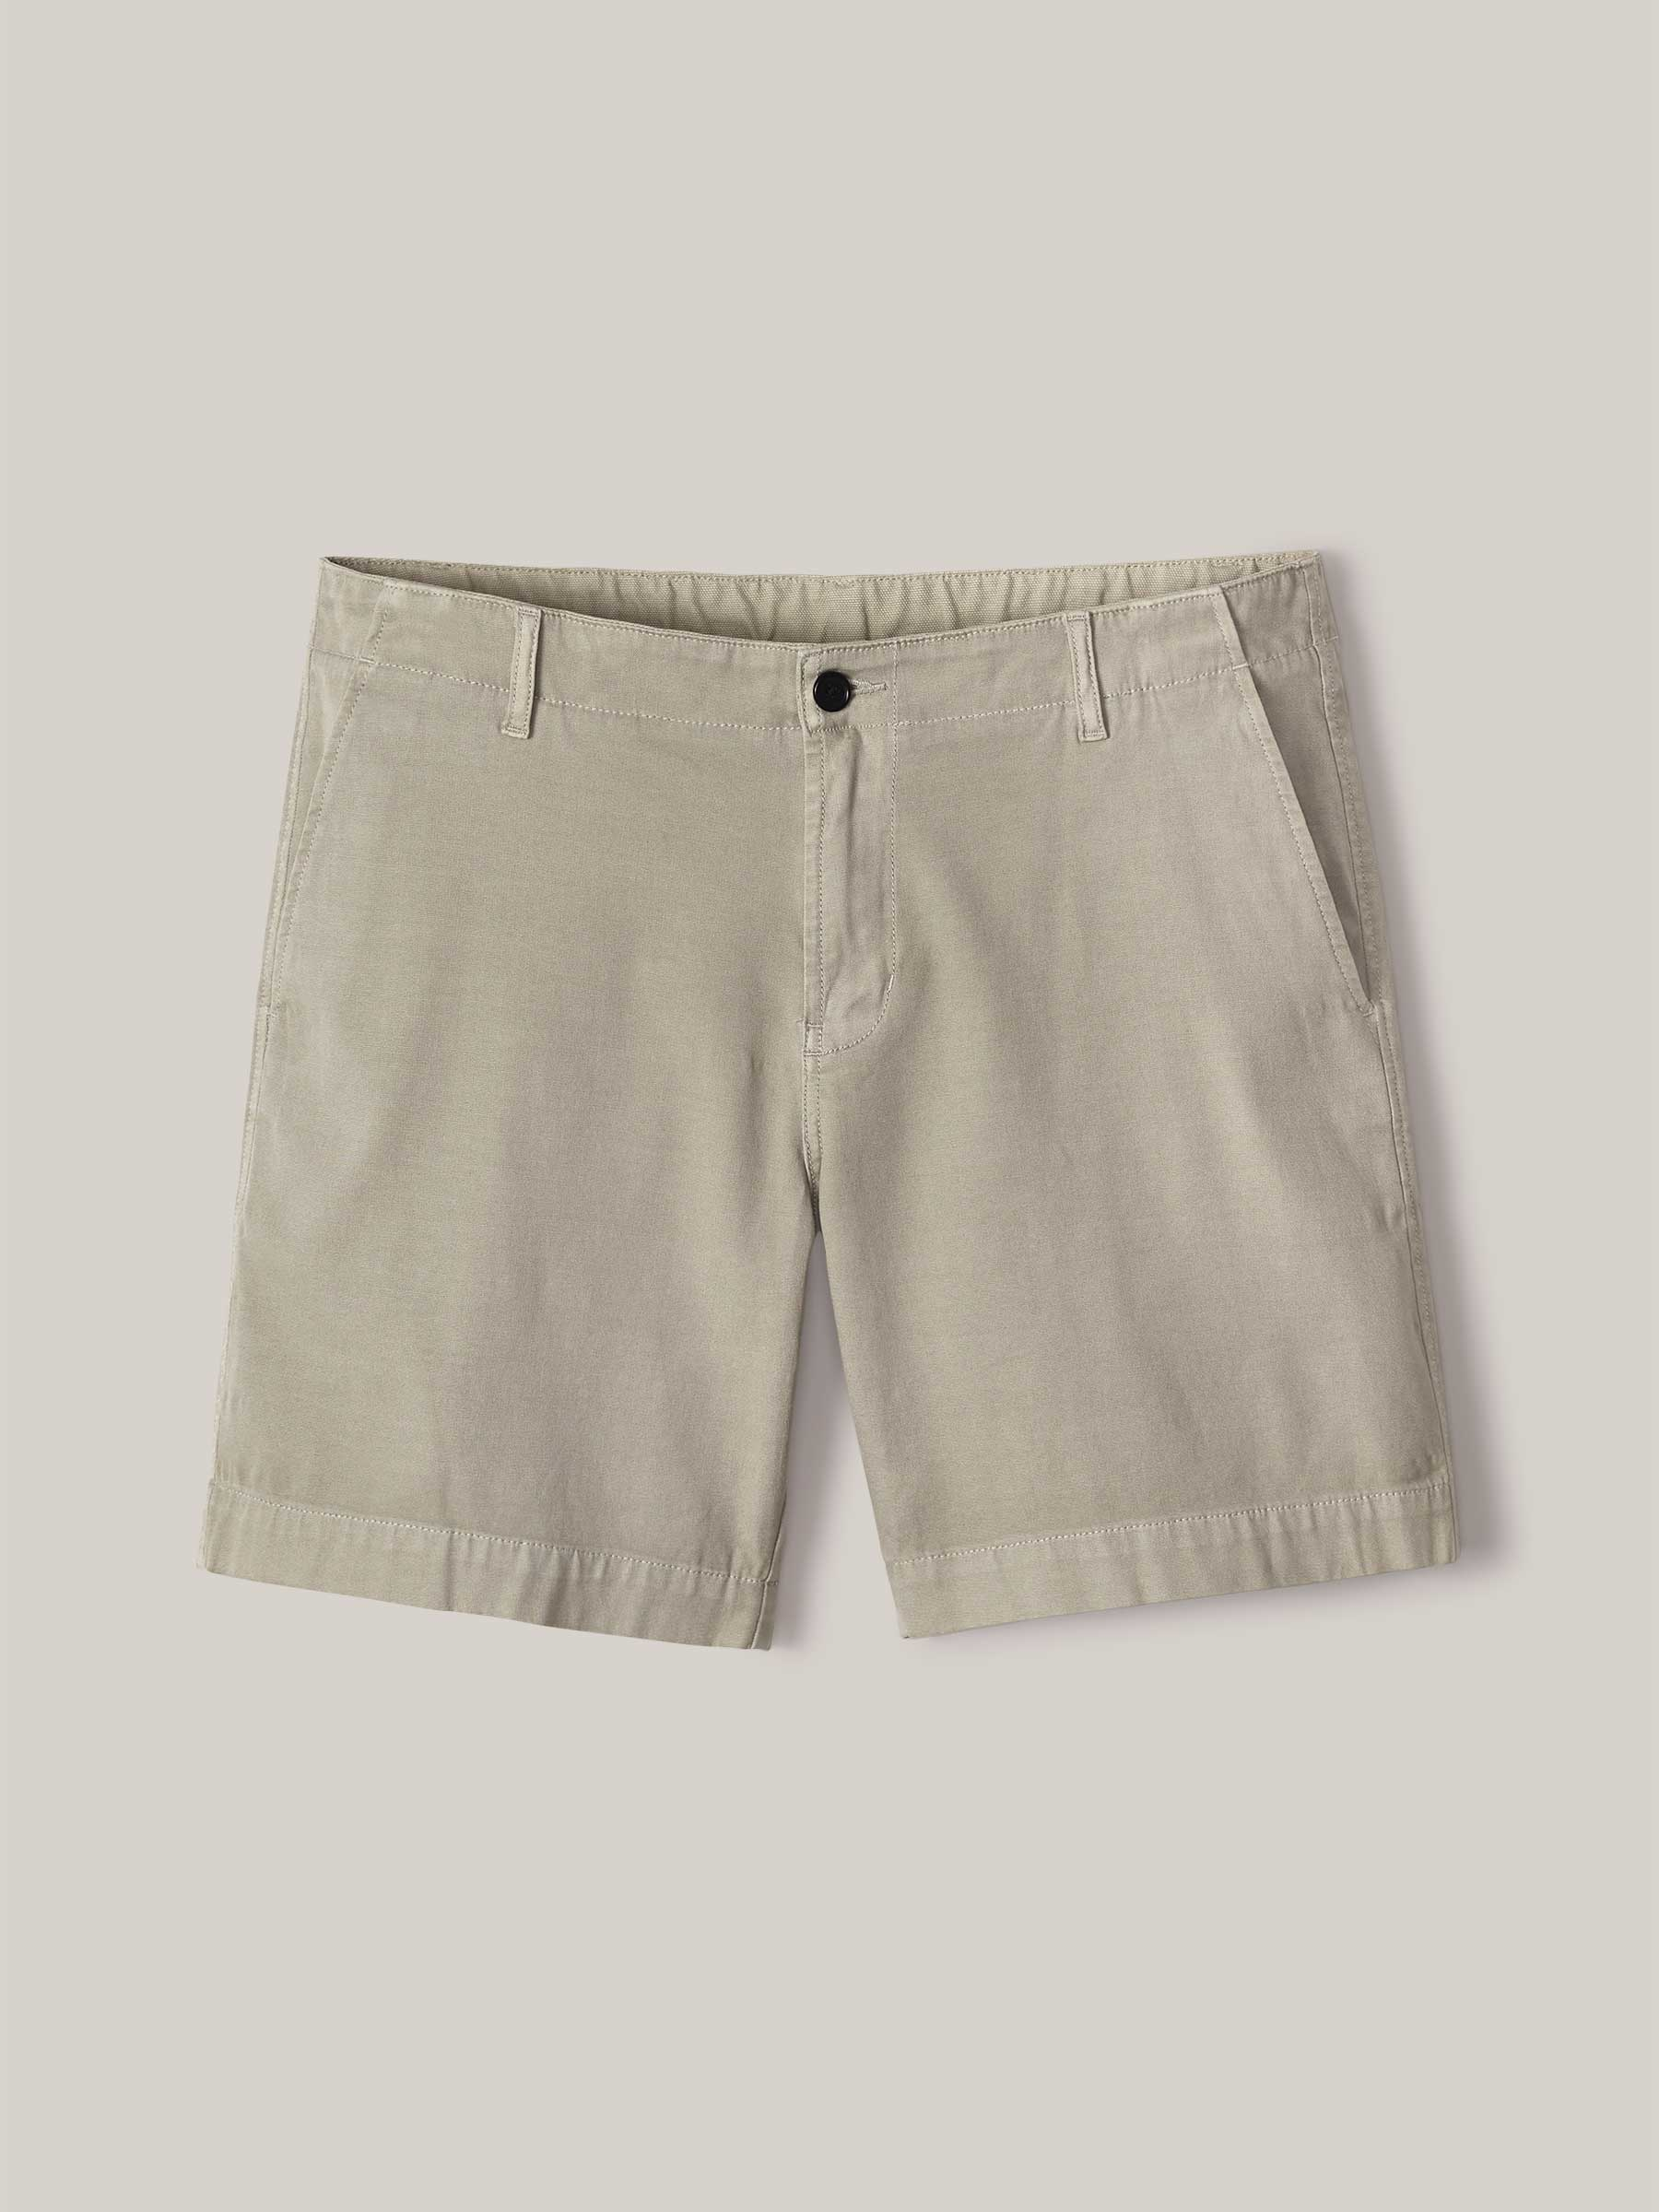 Buck Mason - Flint Vintage Canvas Walk Short